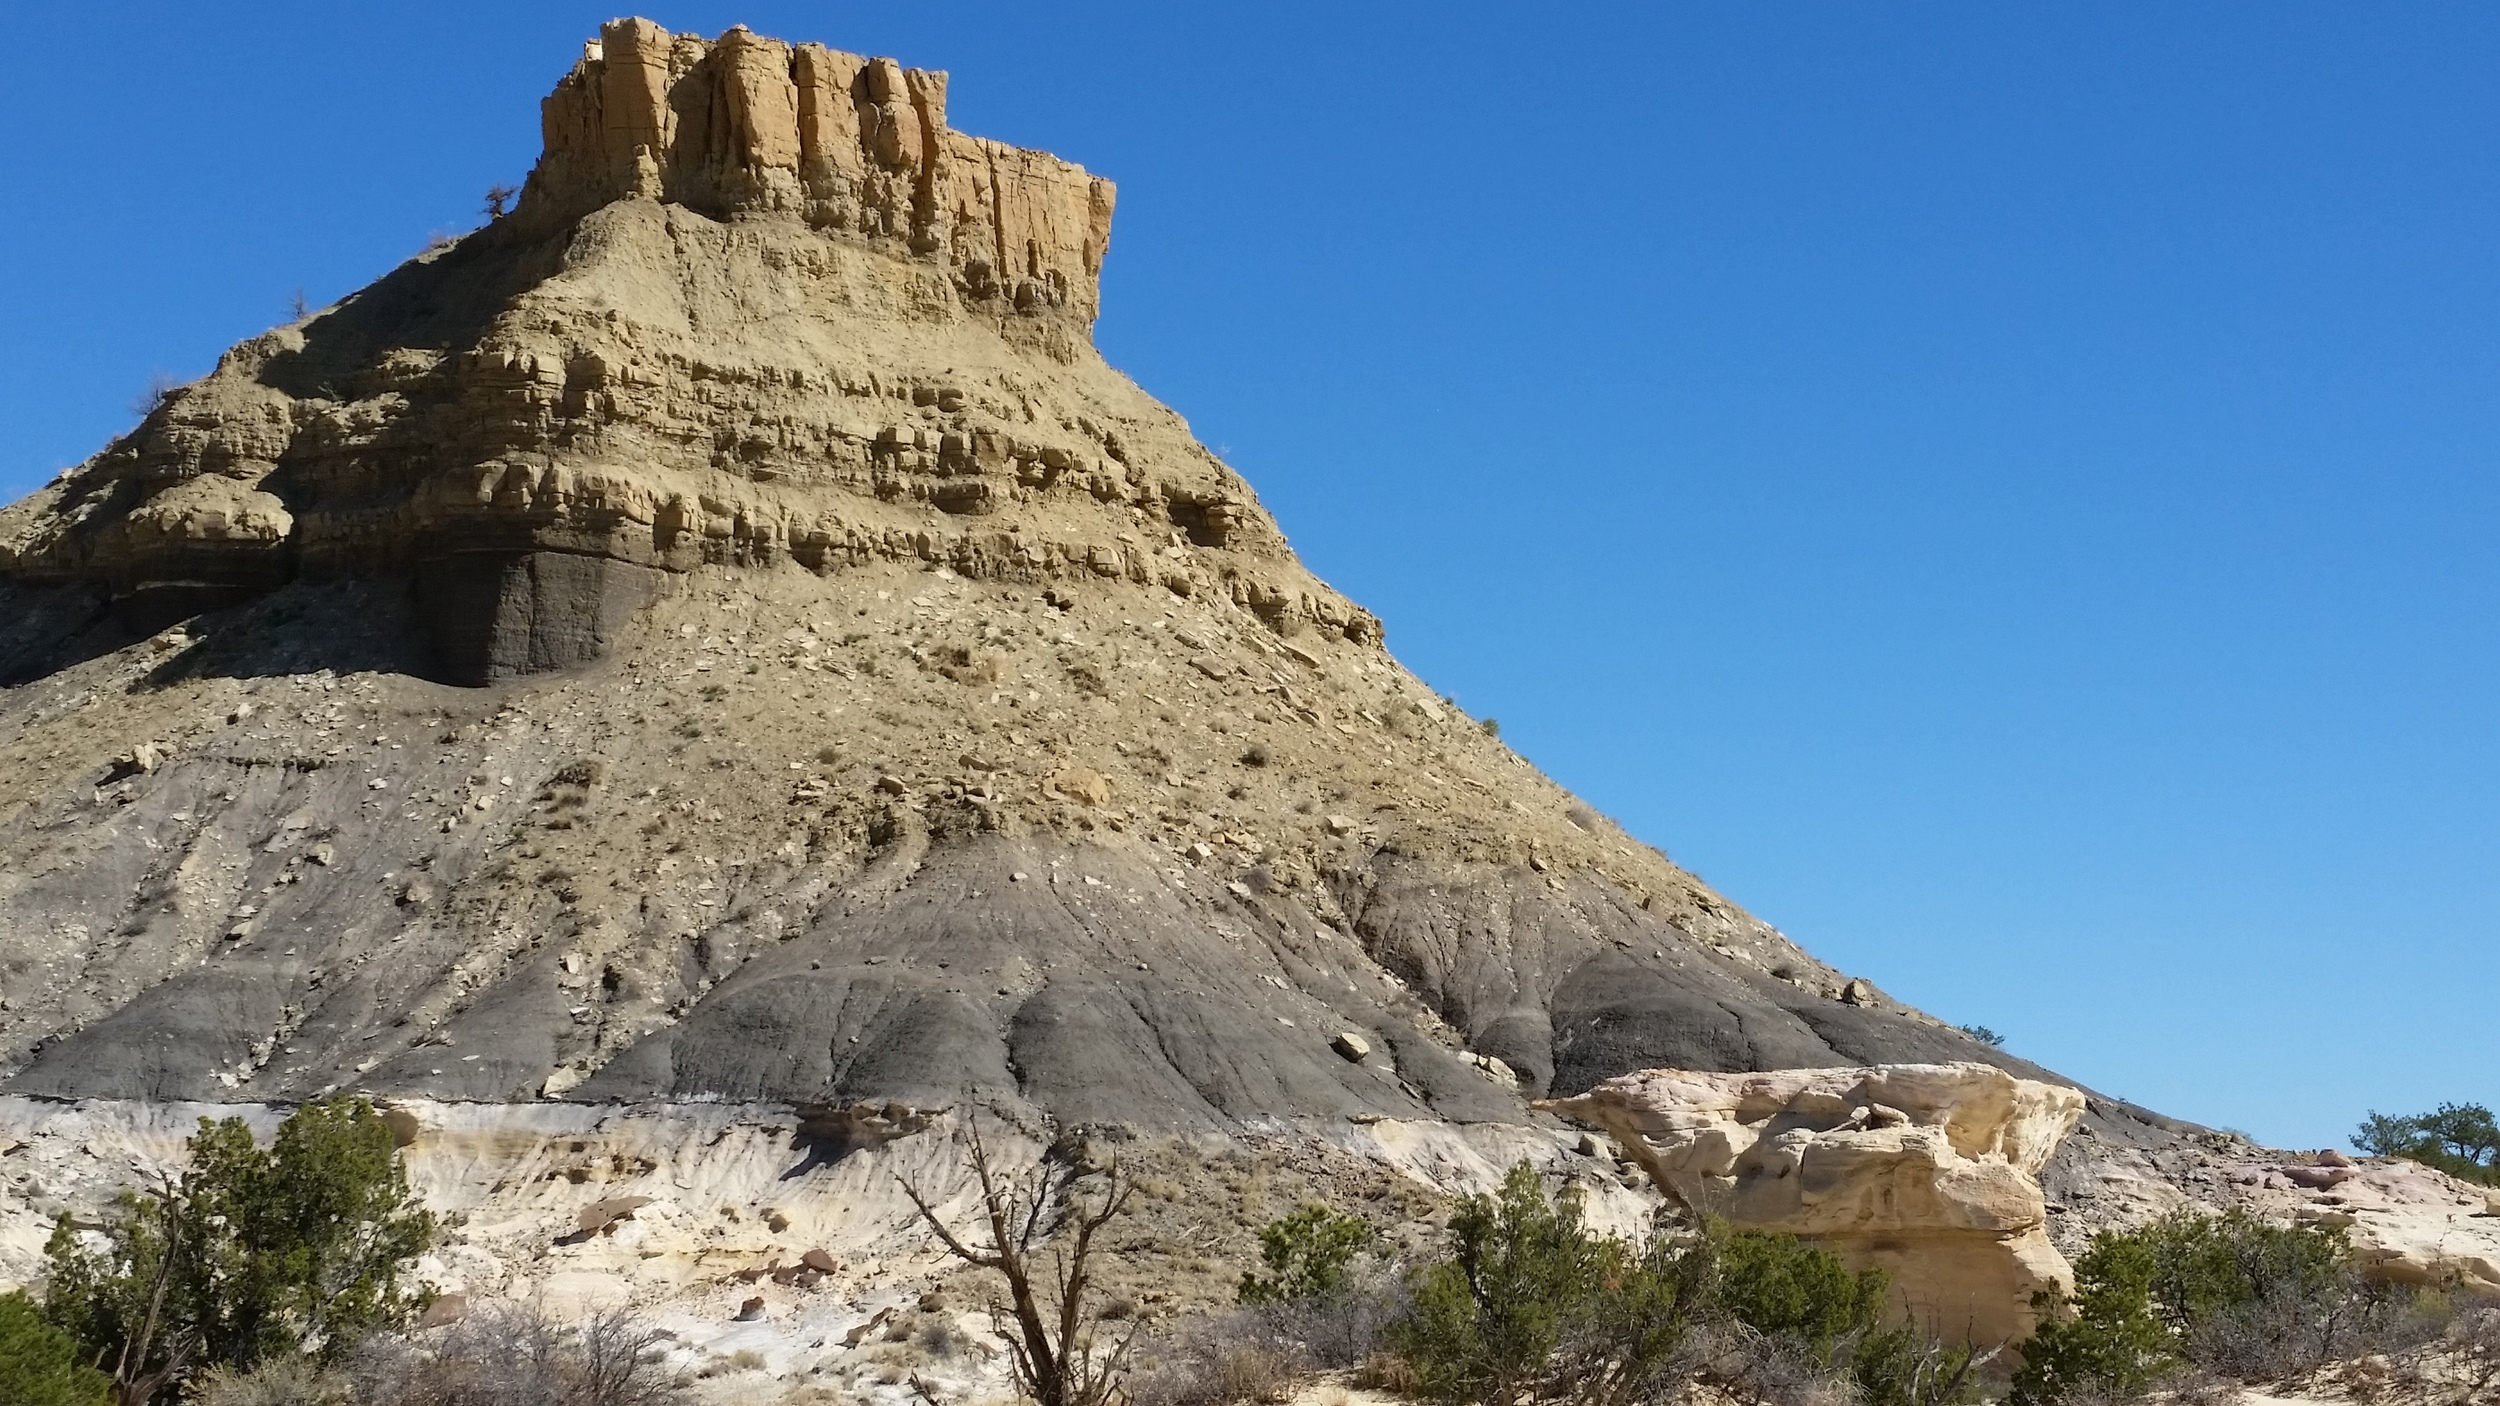 A butte of bentonite hills with a sandstone cap.